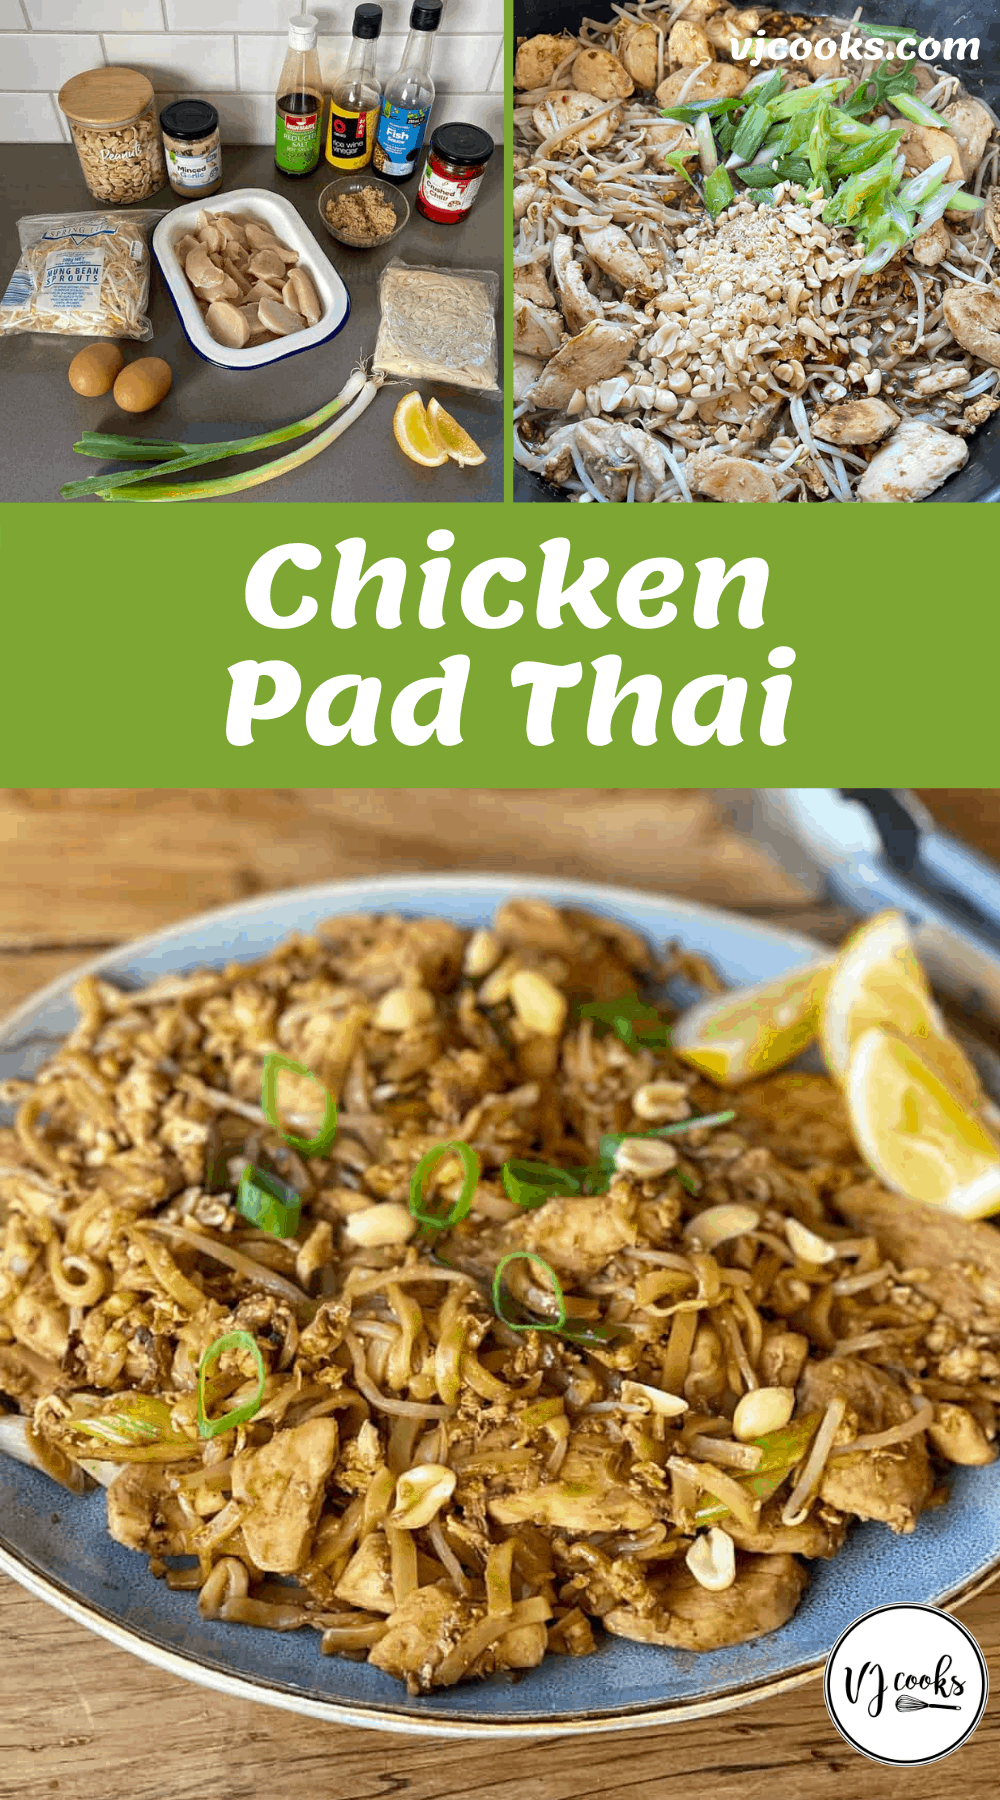 The ingredients for and process of making Chicken Pad Thai.